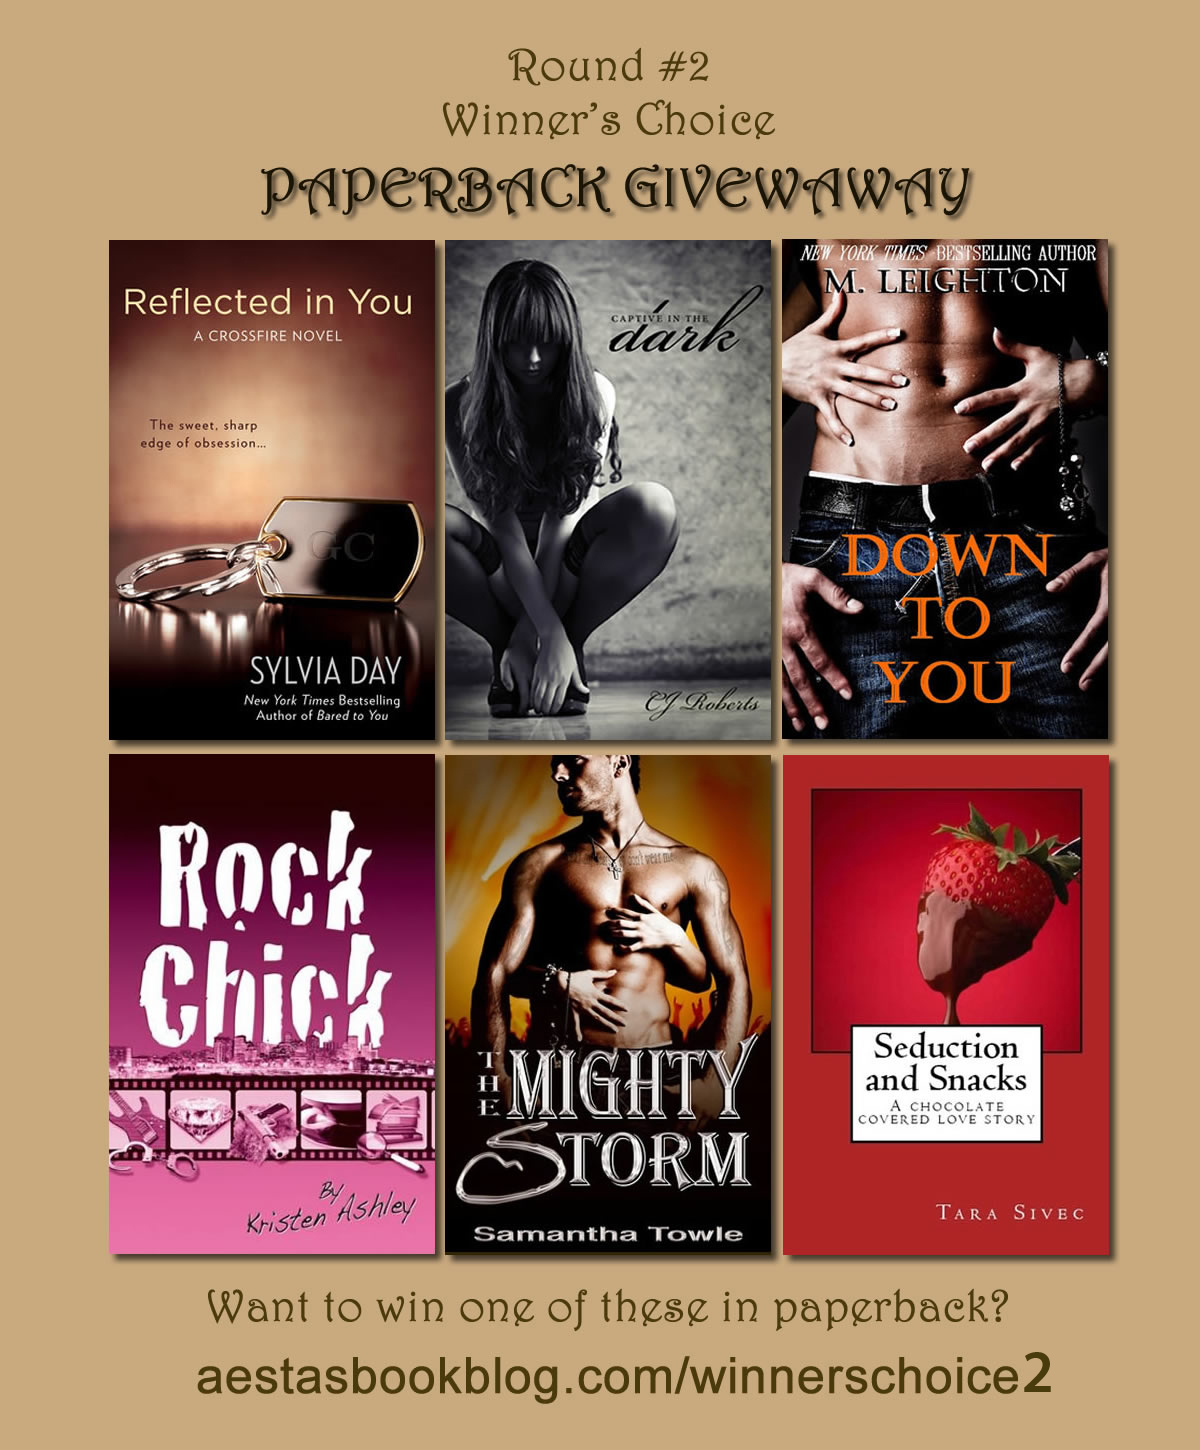 PAPERBACK AND eBOOK GIVEAWAY: Winner's Choice Round #2